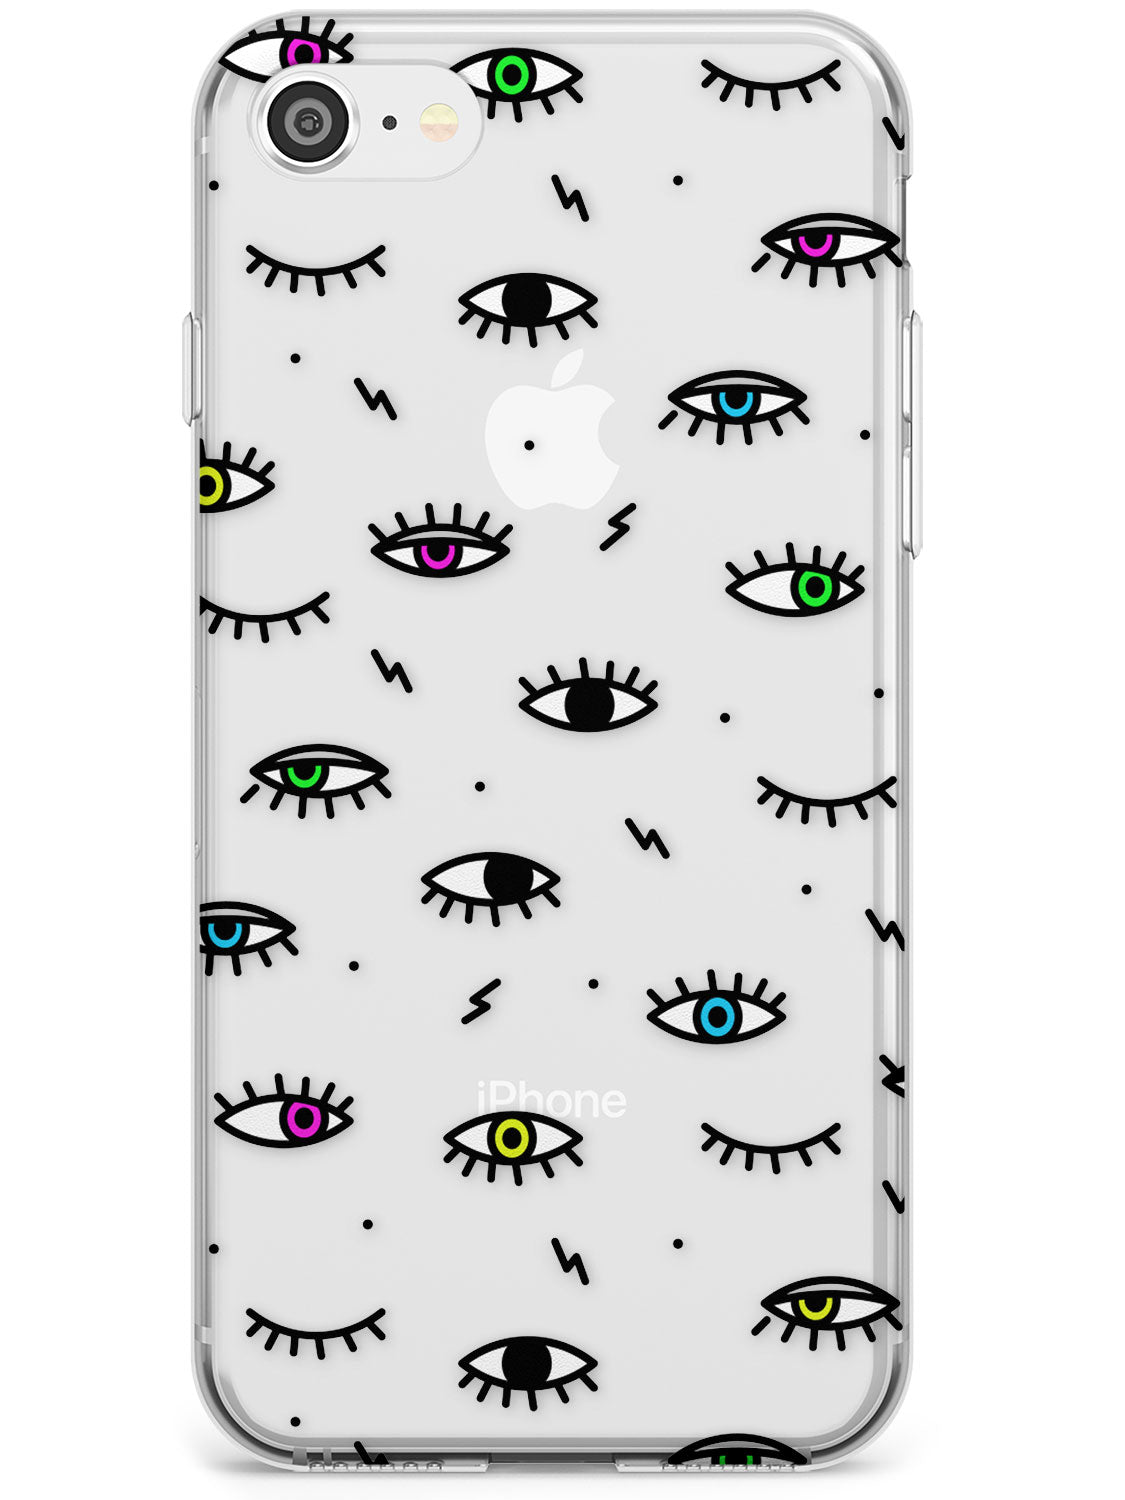 Colourful Transparent Eyes iPhone Case by Case Warehouse ®